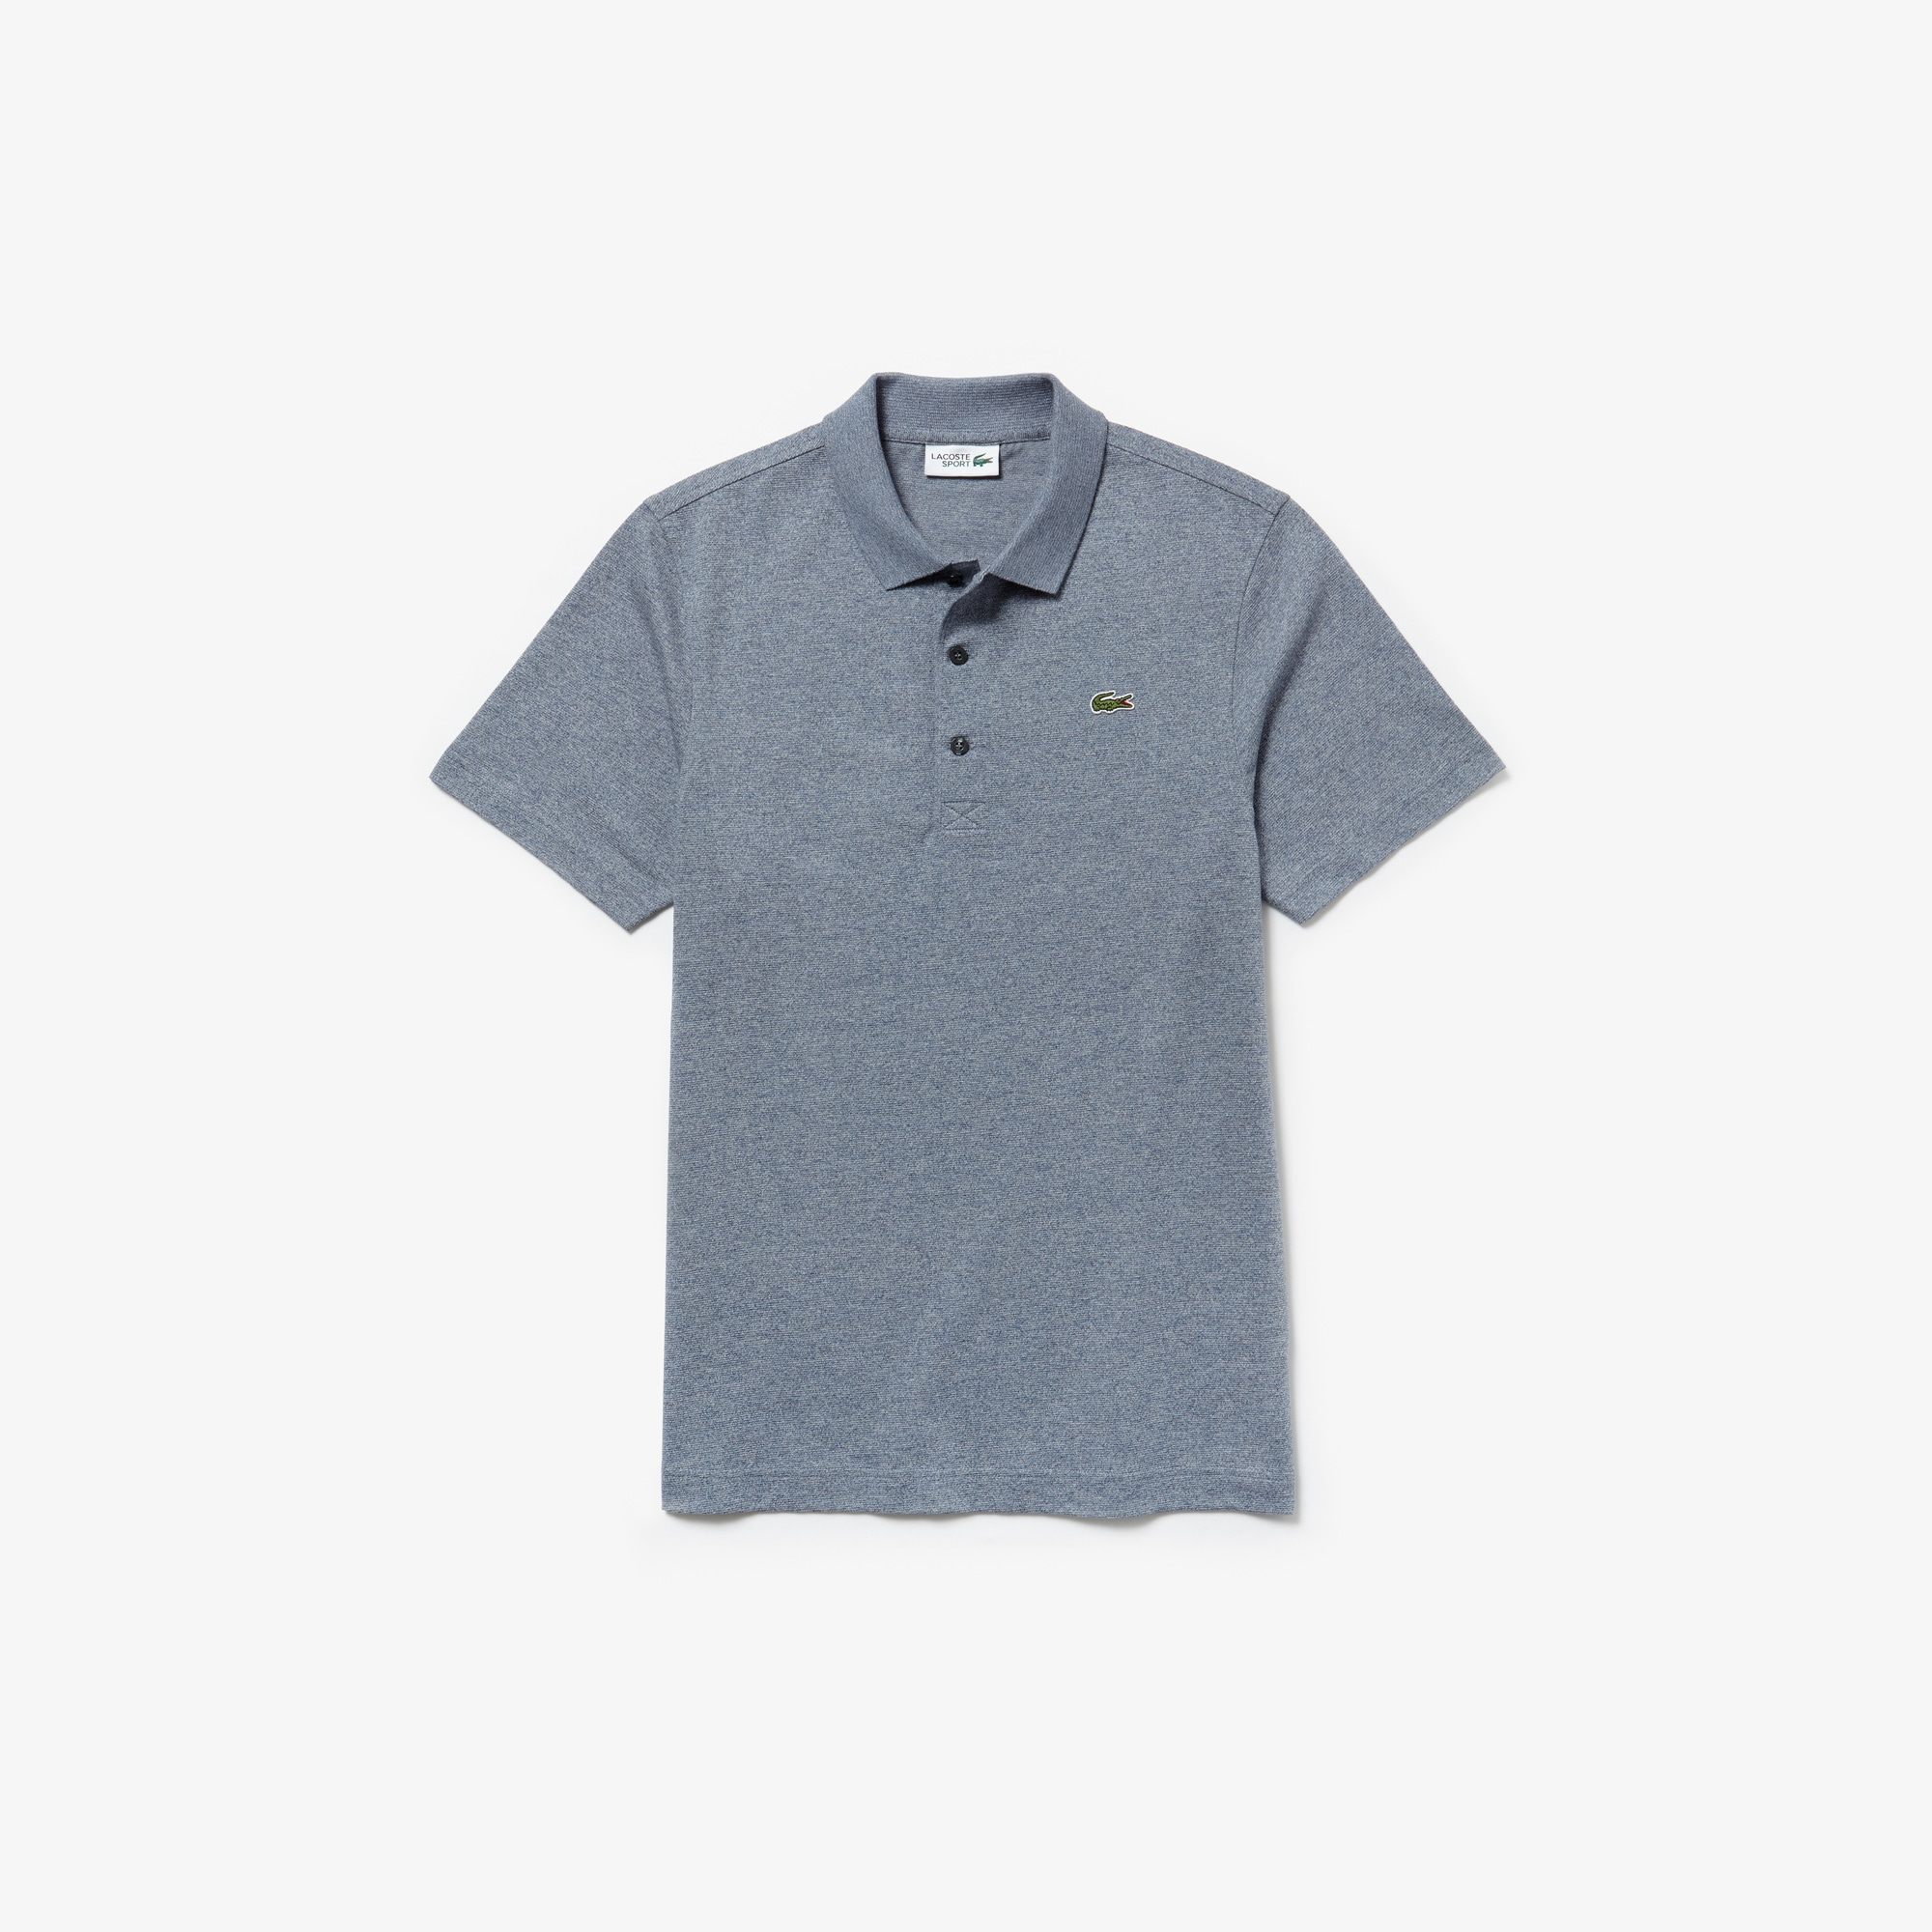 Polos Manches Lacoste Homme Manches CourtesVêtements CourtesVêtements Polos A4L3Rj5